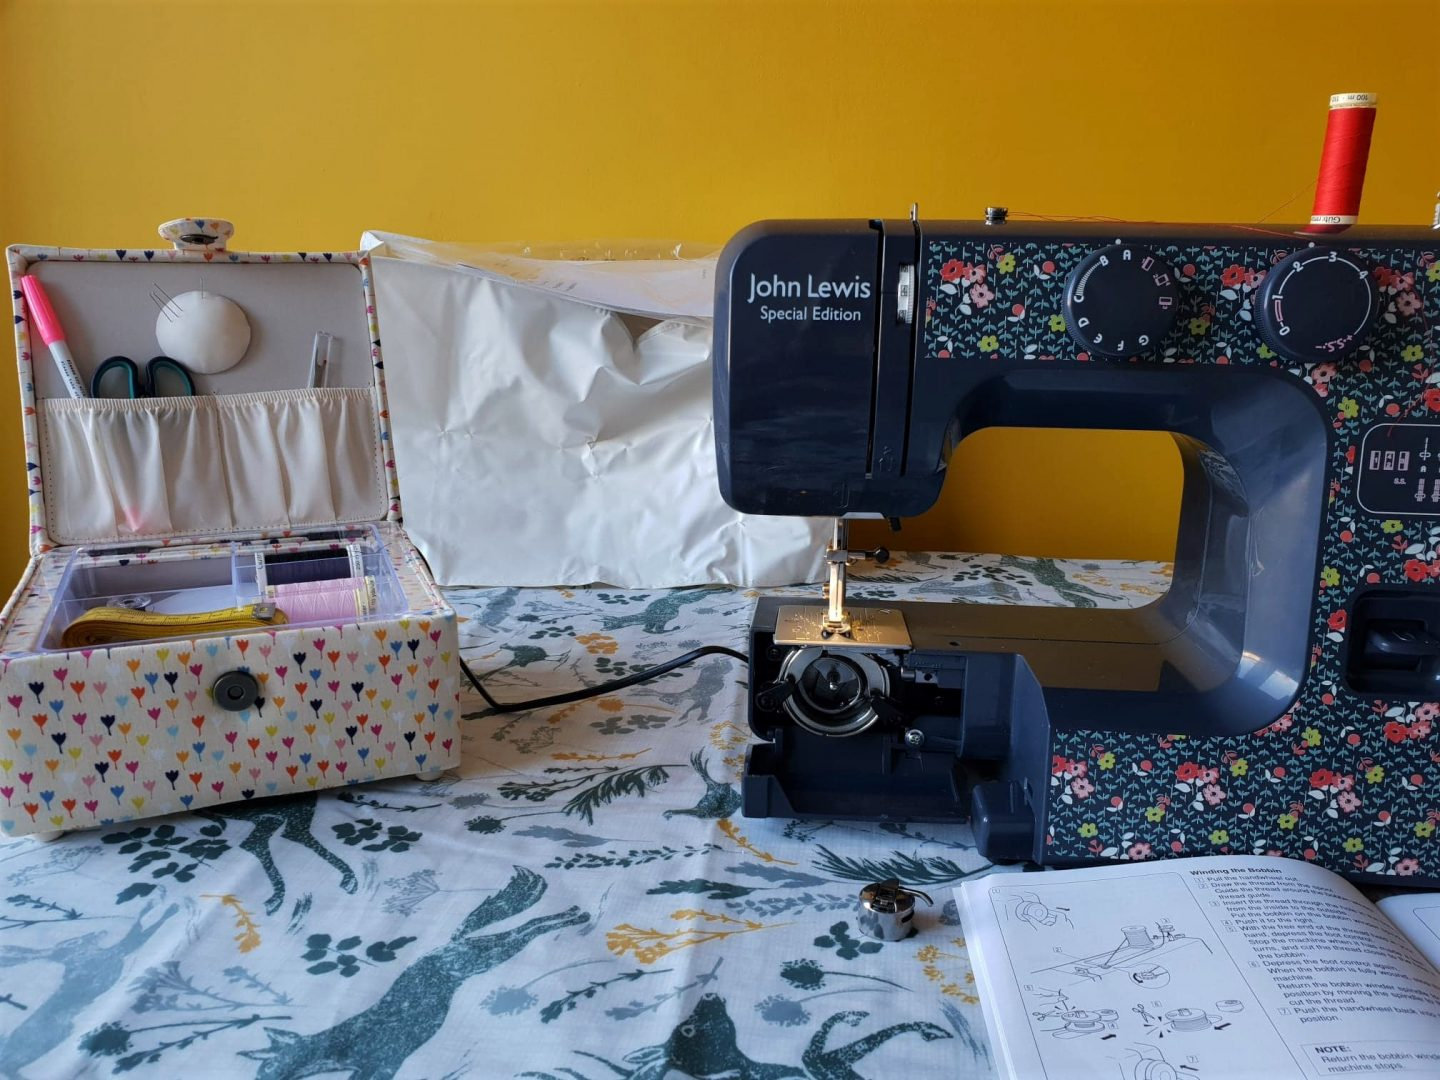 John Lewis Sewing machine and sewing box